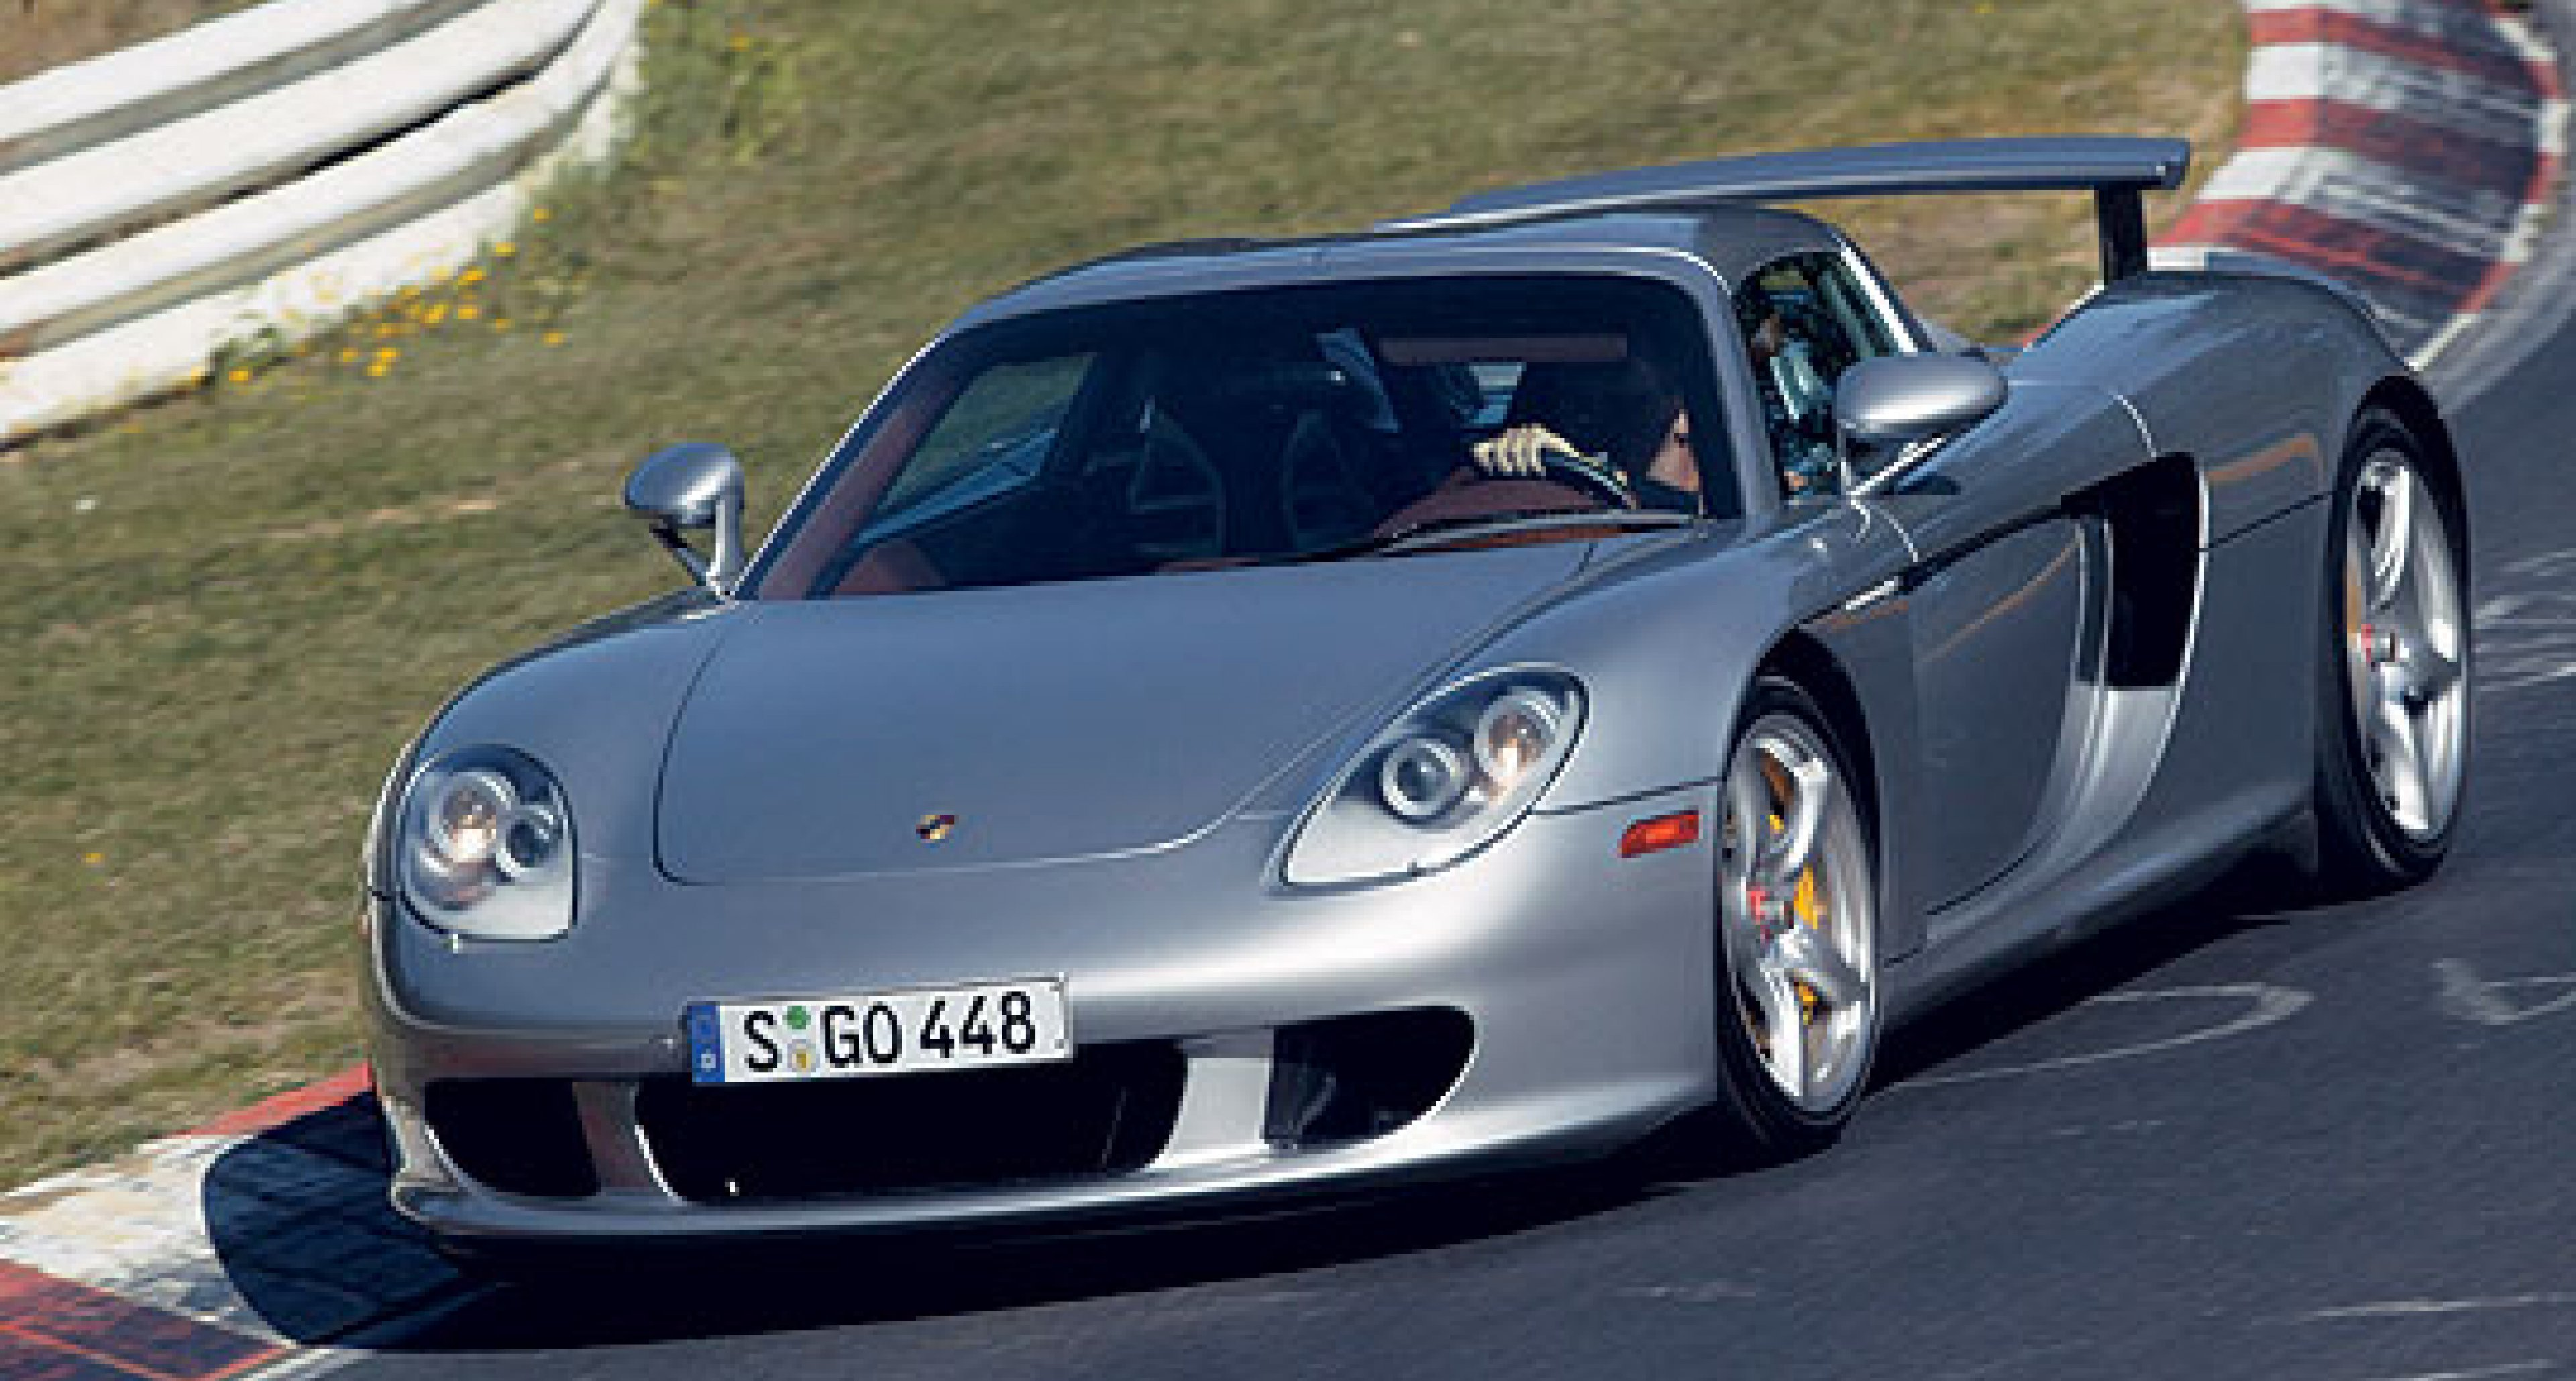 The Carrera GT is the fastest car at the Nürburgring